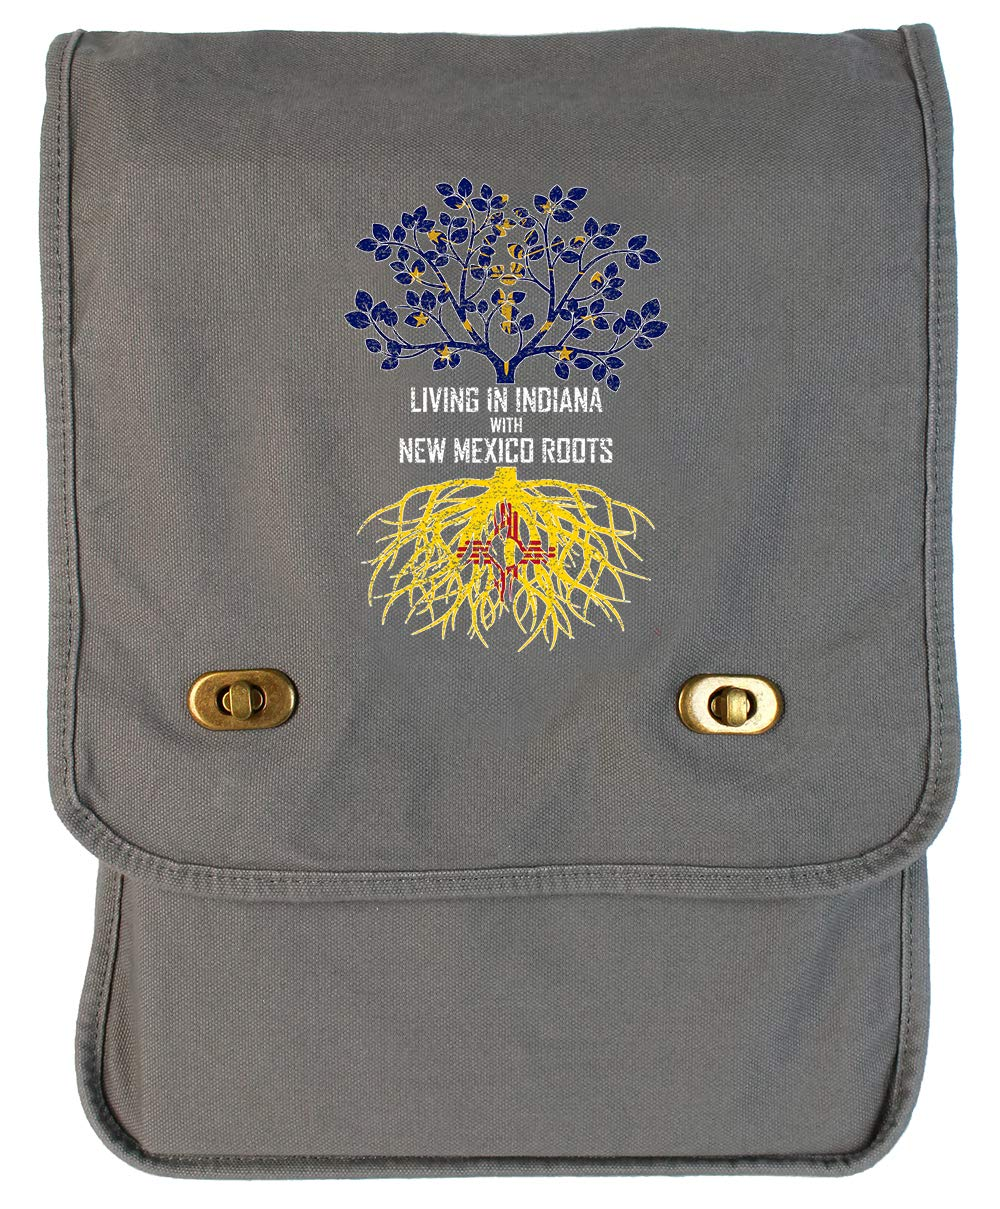 Tenacitee Living In Indiana with New Mexico Roots Grey Brushed Canvas Messenger Bag